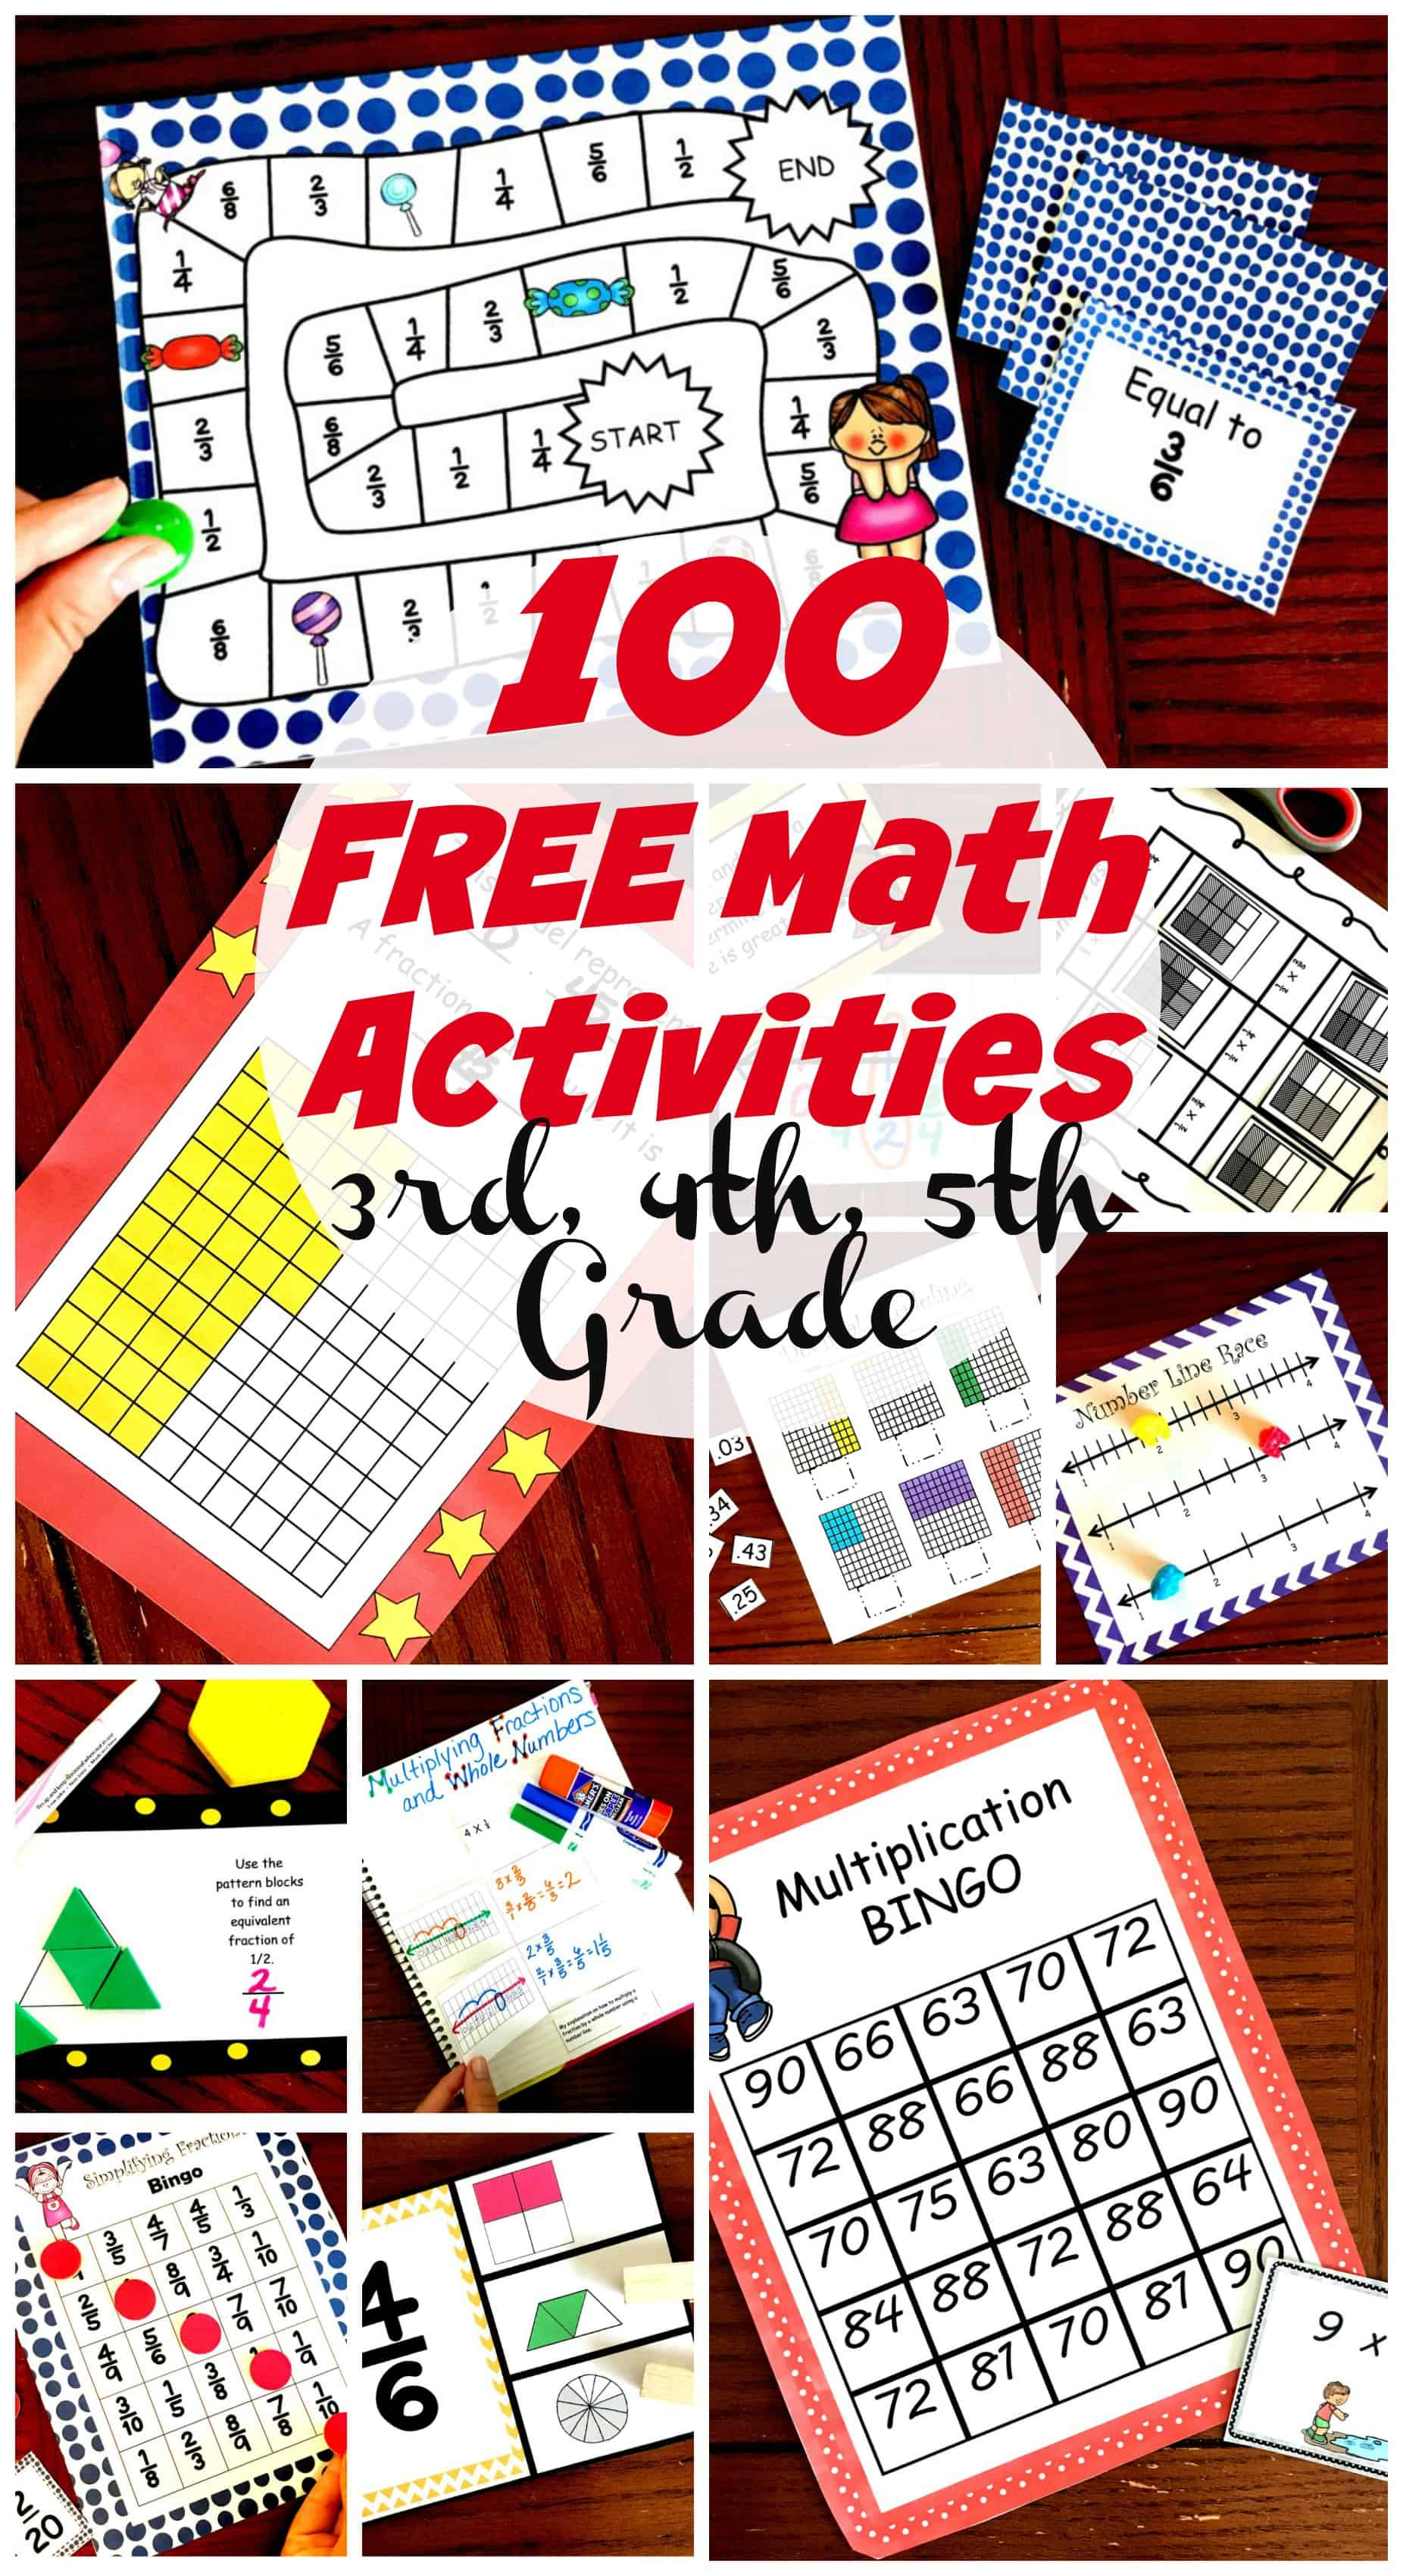 If you are on the search for fun math activities, look no further. These activities designed for 3rd, 4th and 5th-grade students are engaging and free.